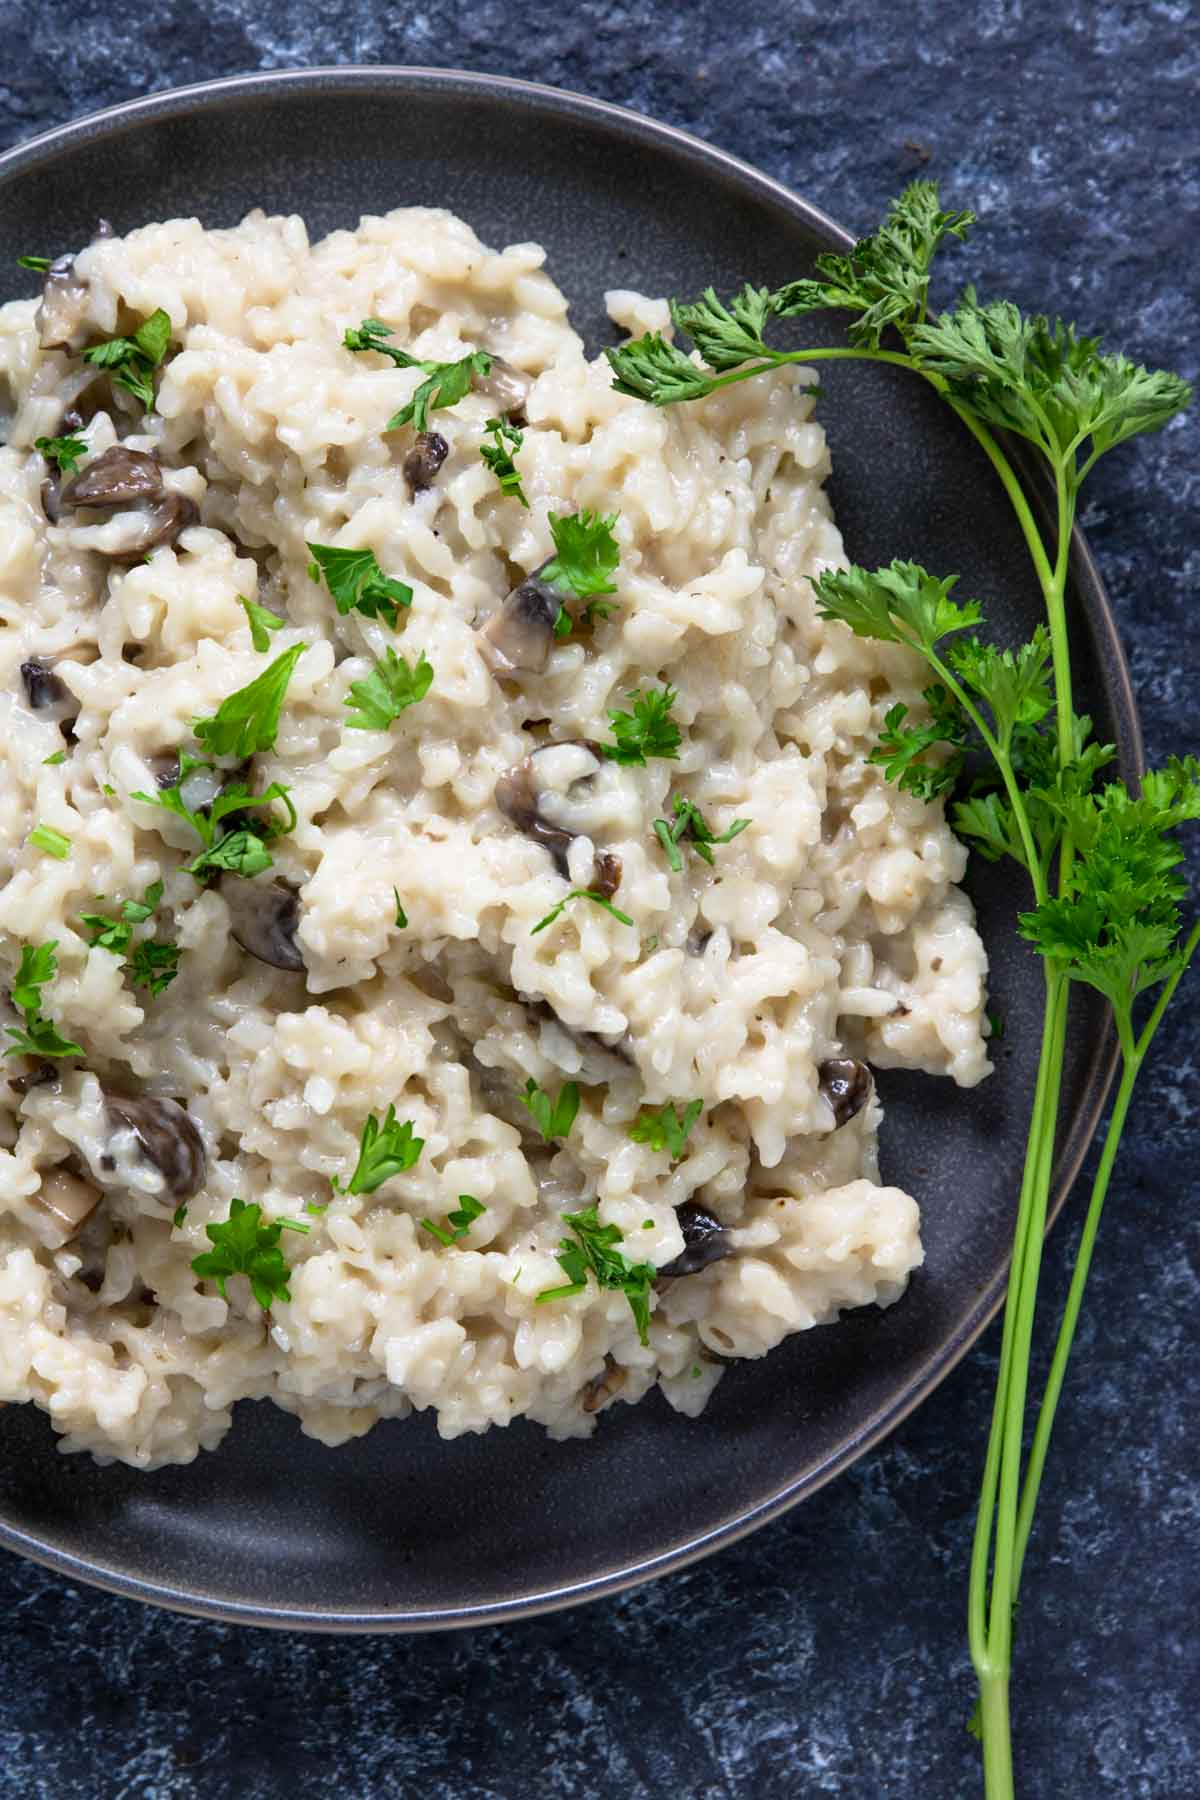 A plate of mushroom risotto with sprigs of parsley to the side